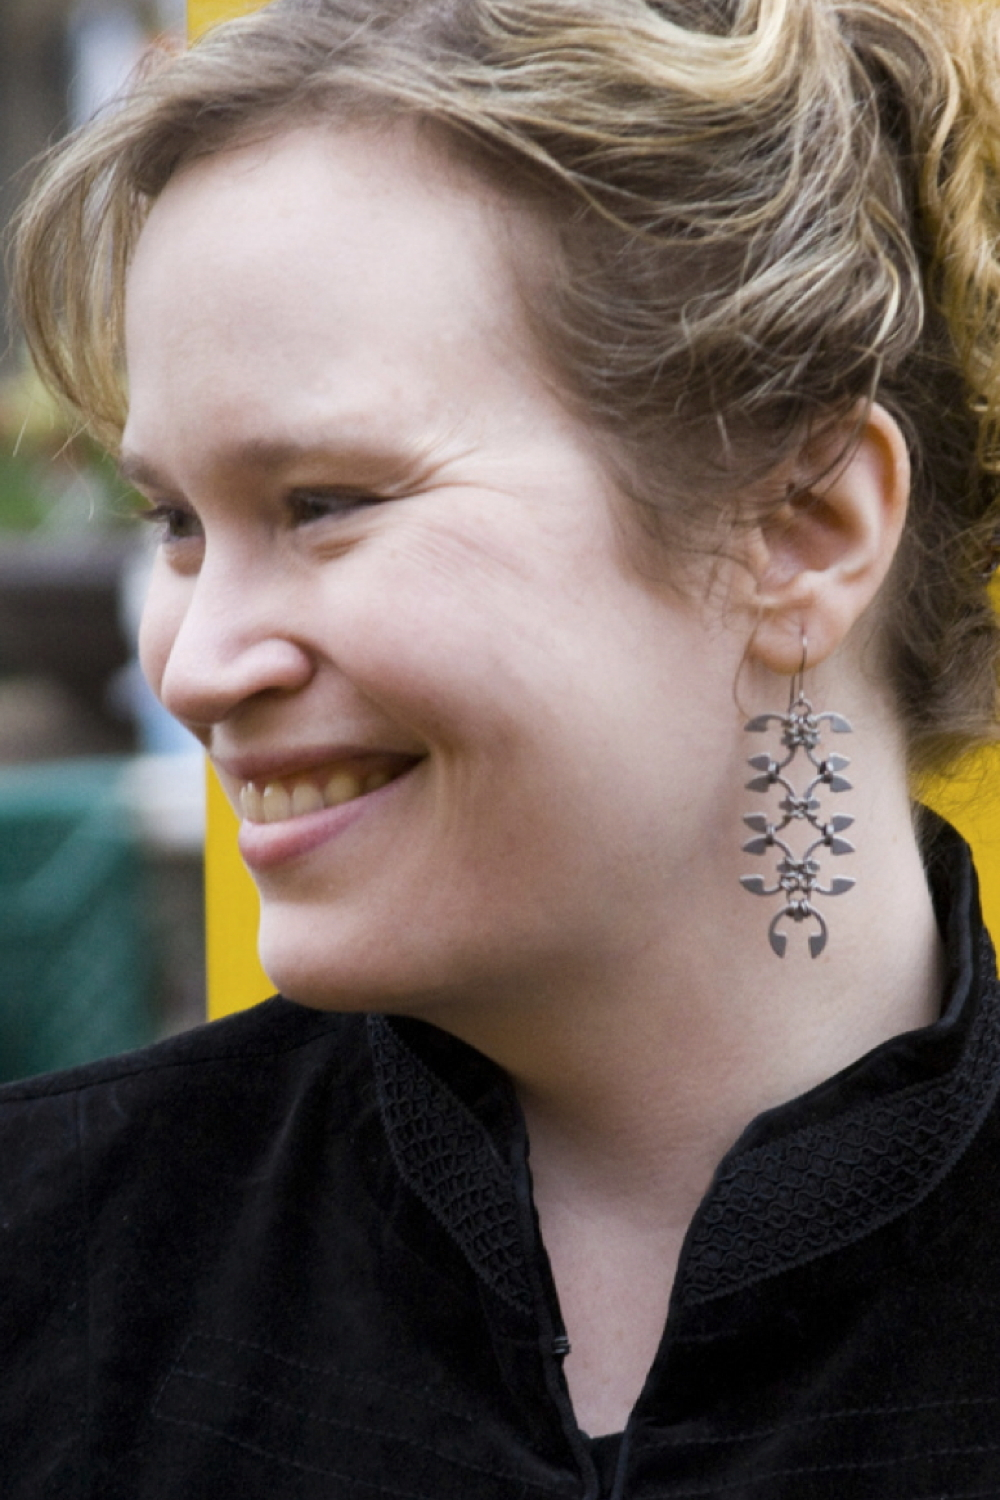 Smiling model wears Wraptillion's Long Wisteria Earrings with blonde curly hair in an updo and a black velvet jacket.